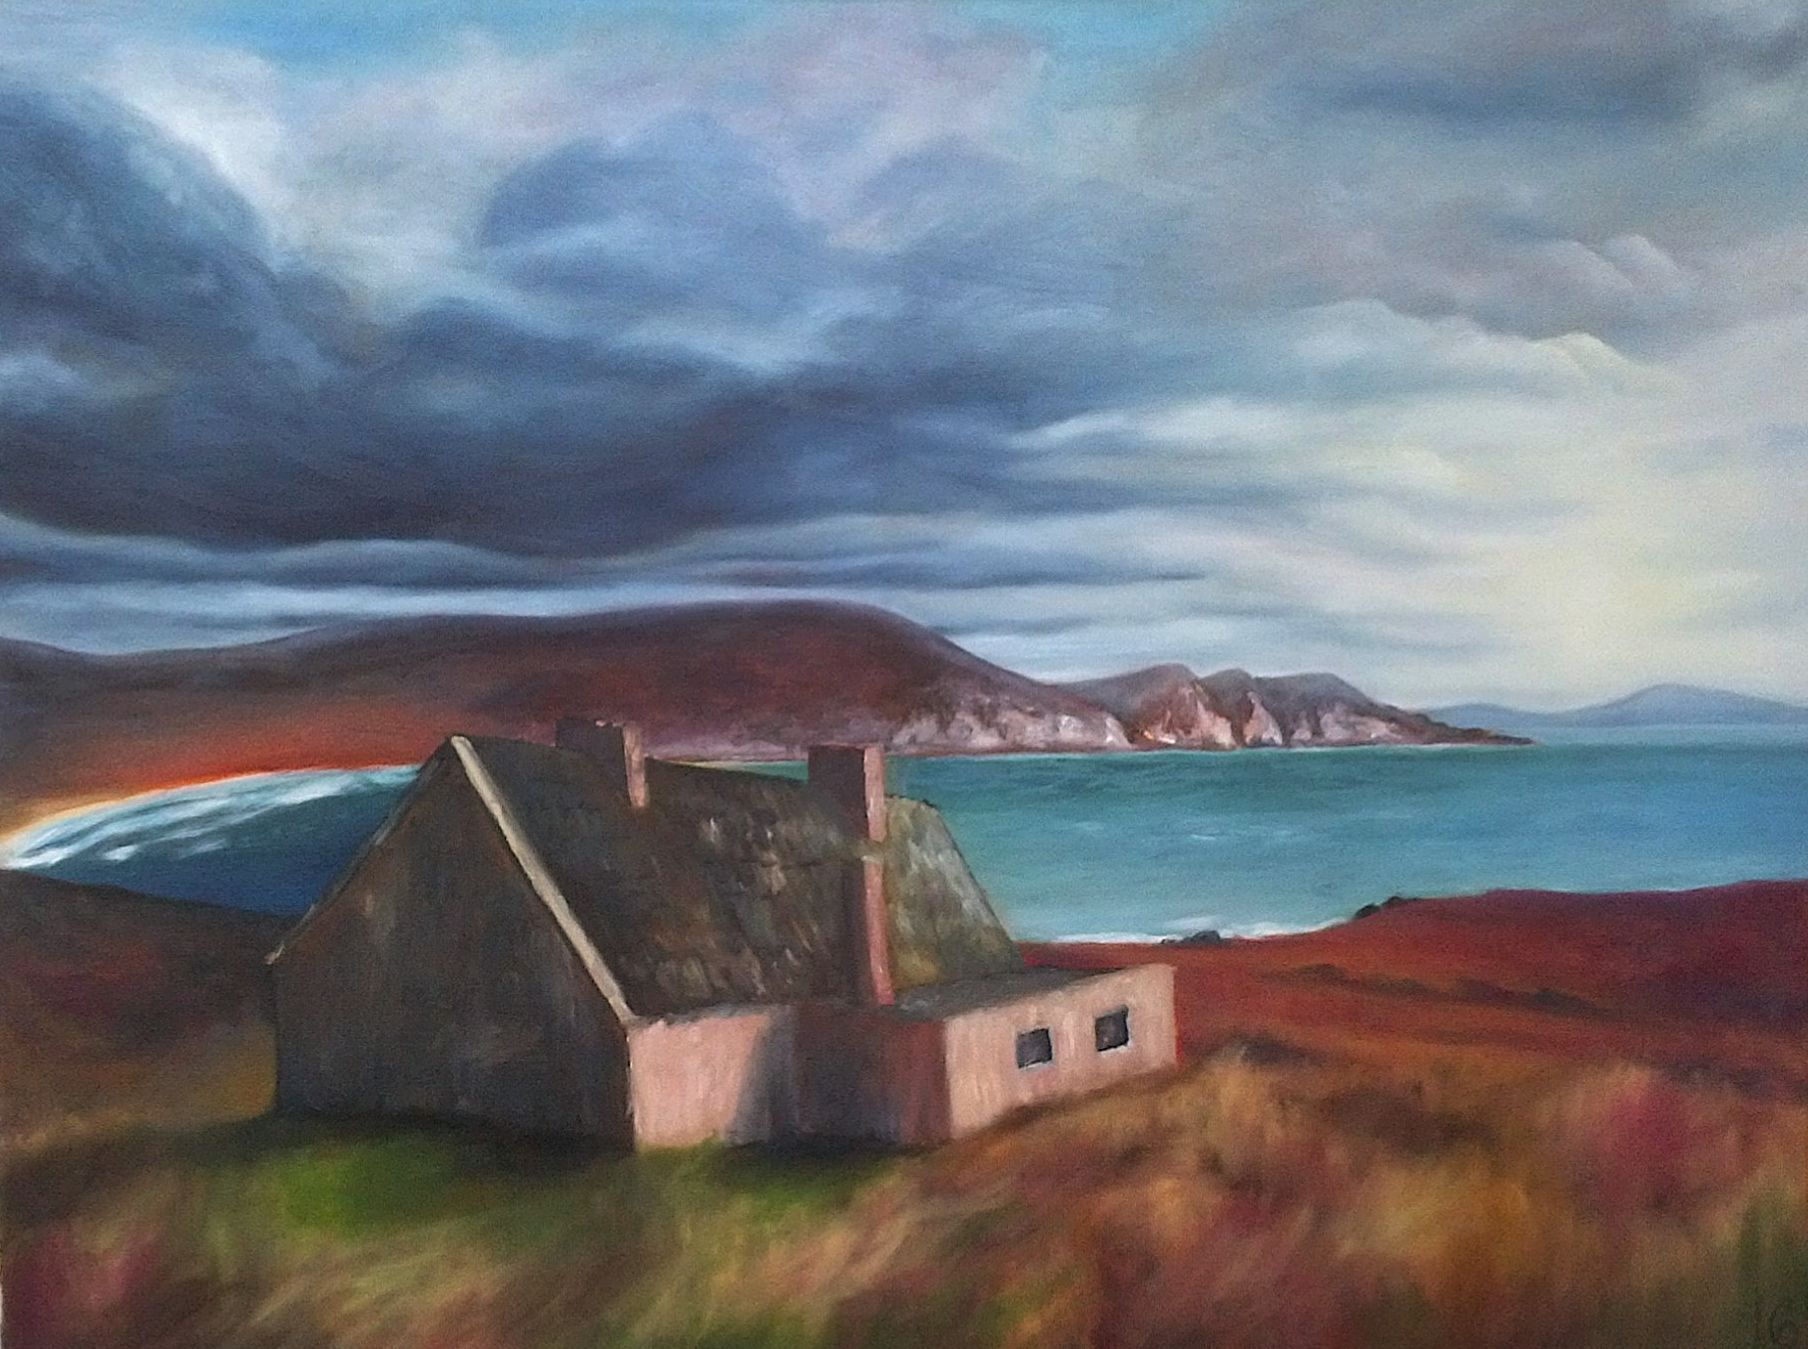 Fertig: Irische See im Co. Kerry/ Finished: Irish Sea in Co. Kerry